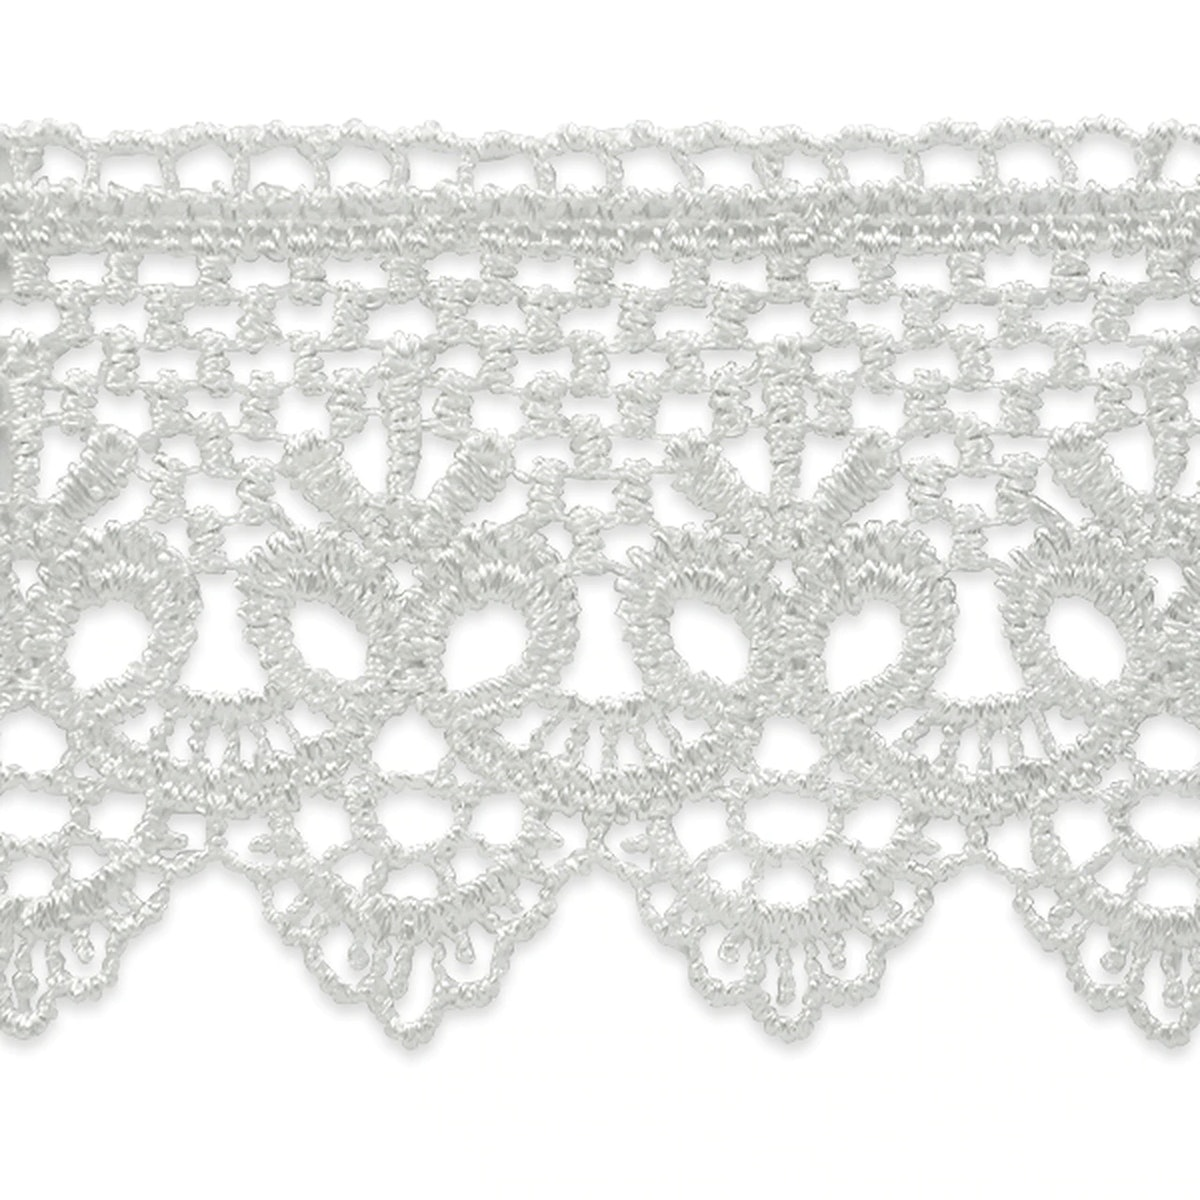 Trims by the Yard Scallop and Bow Lace Trim